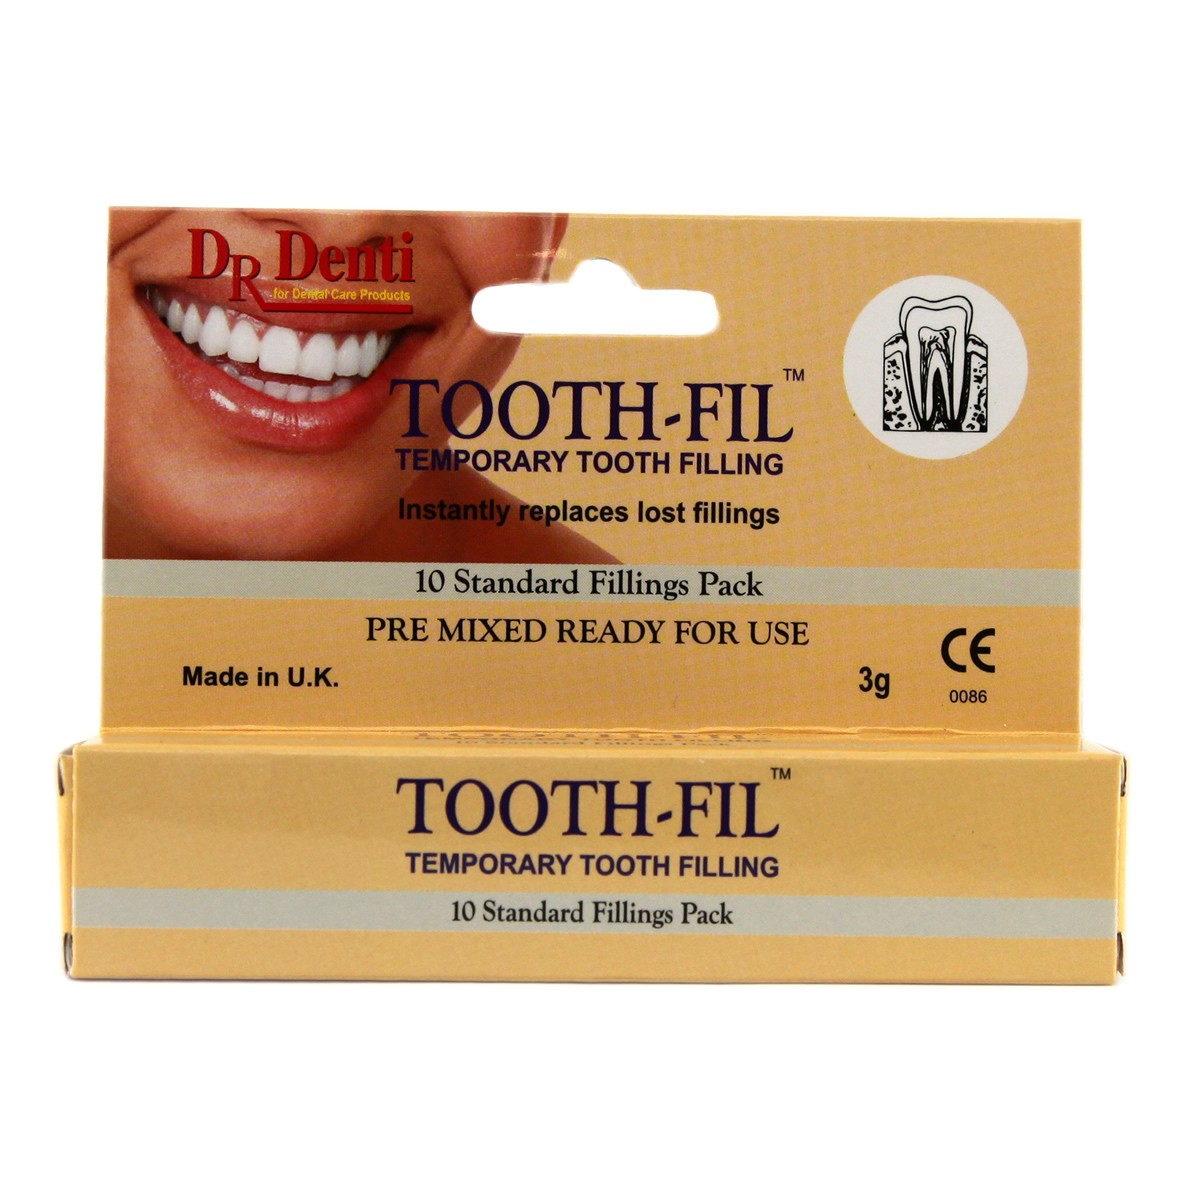 Dr Denti Tooth-Fil Temporary Tooth-Filling